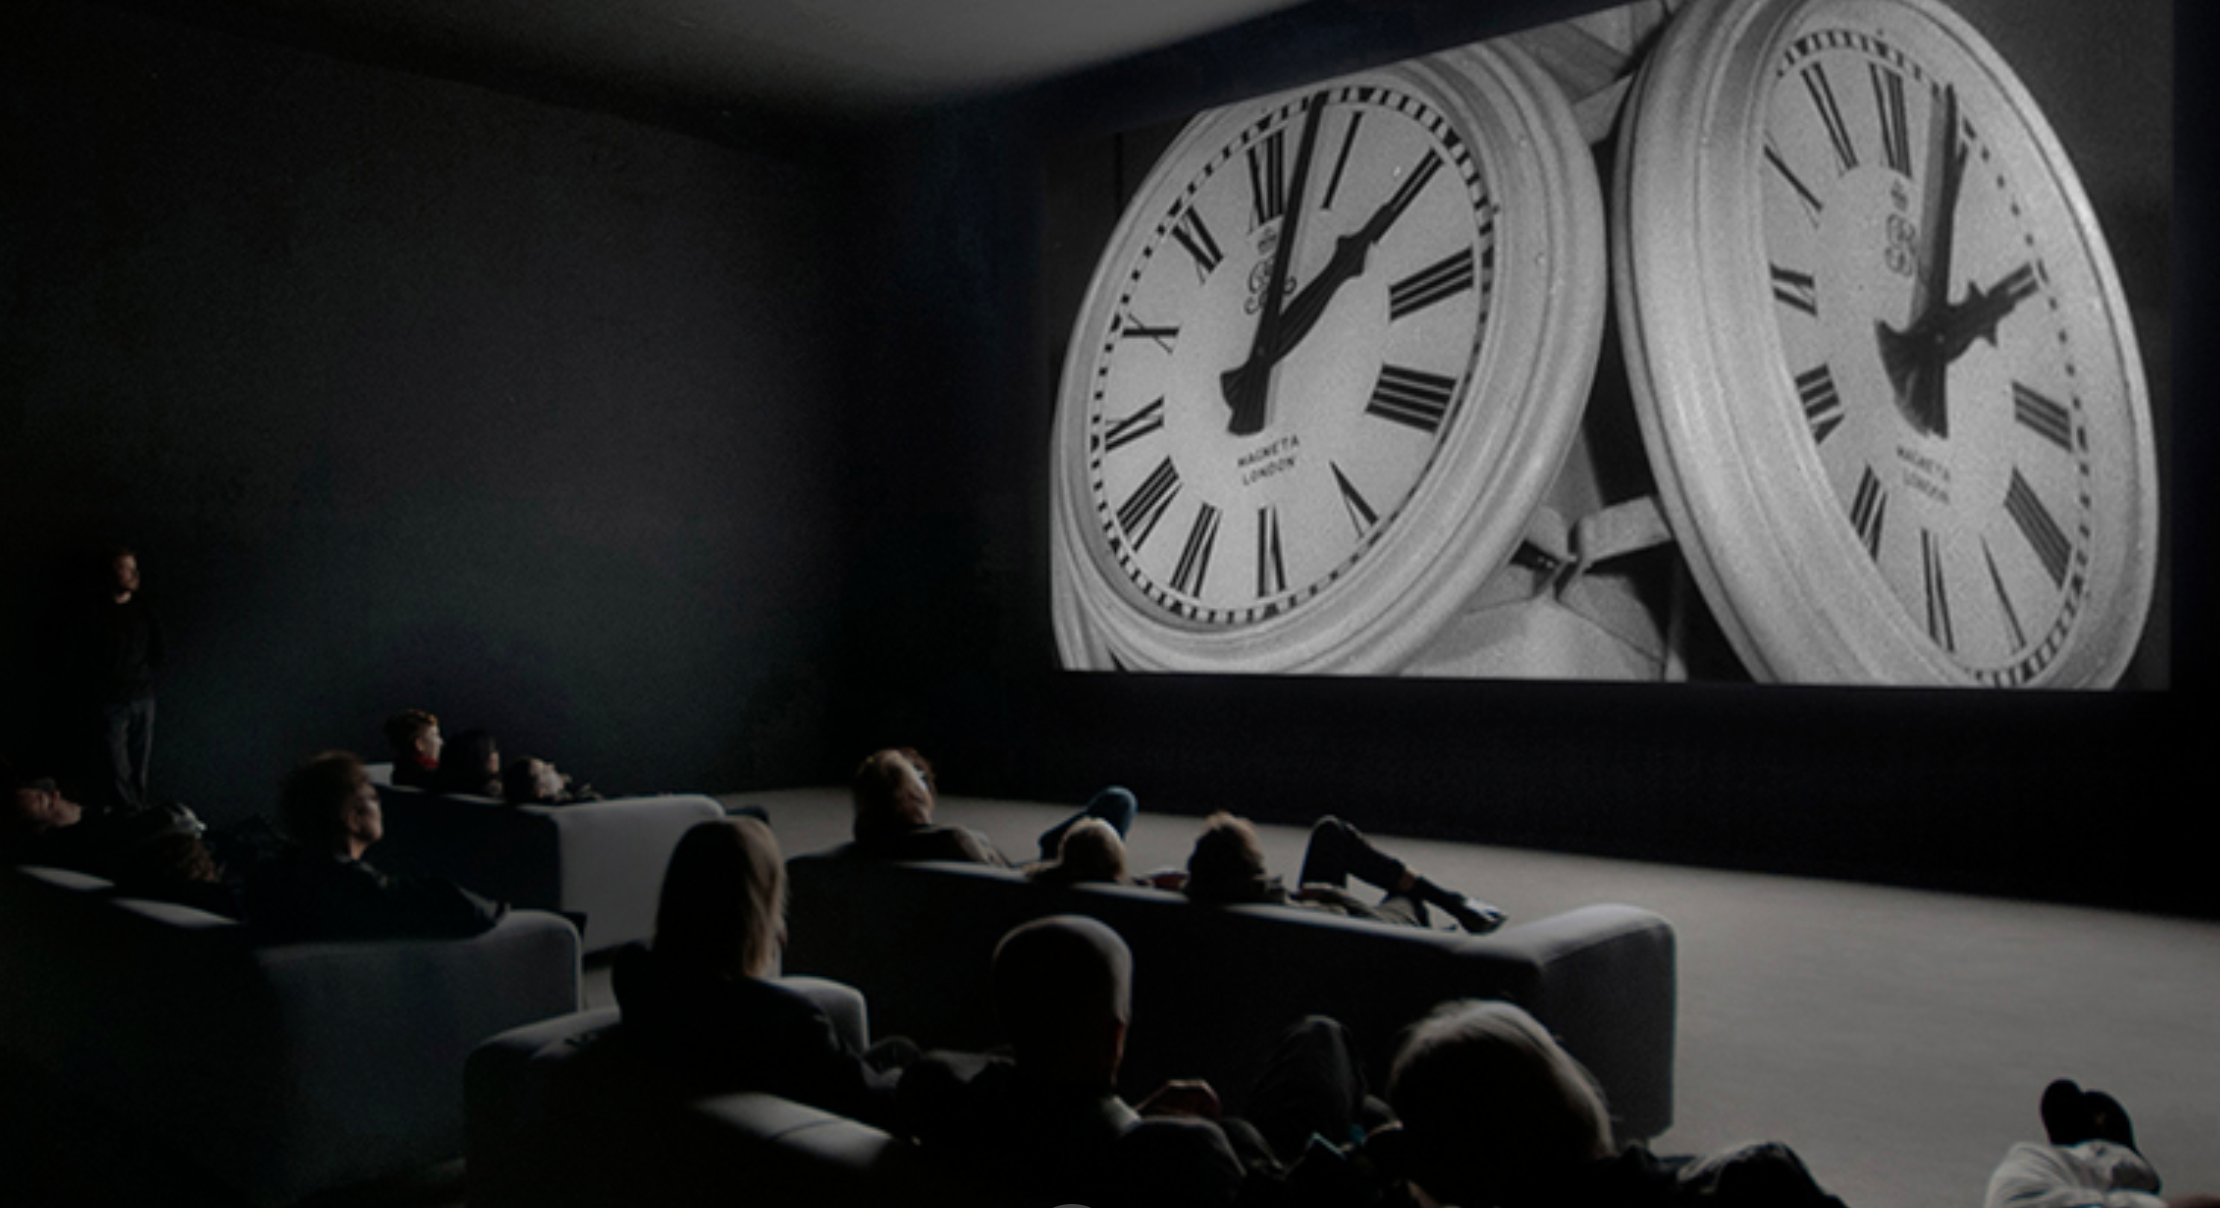 The Polygon Gallery to Present 'The Clock' by Christian Marclay, Opening July 5